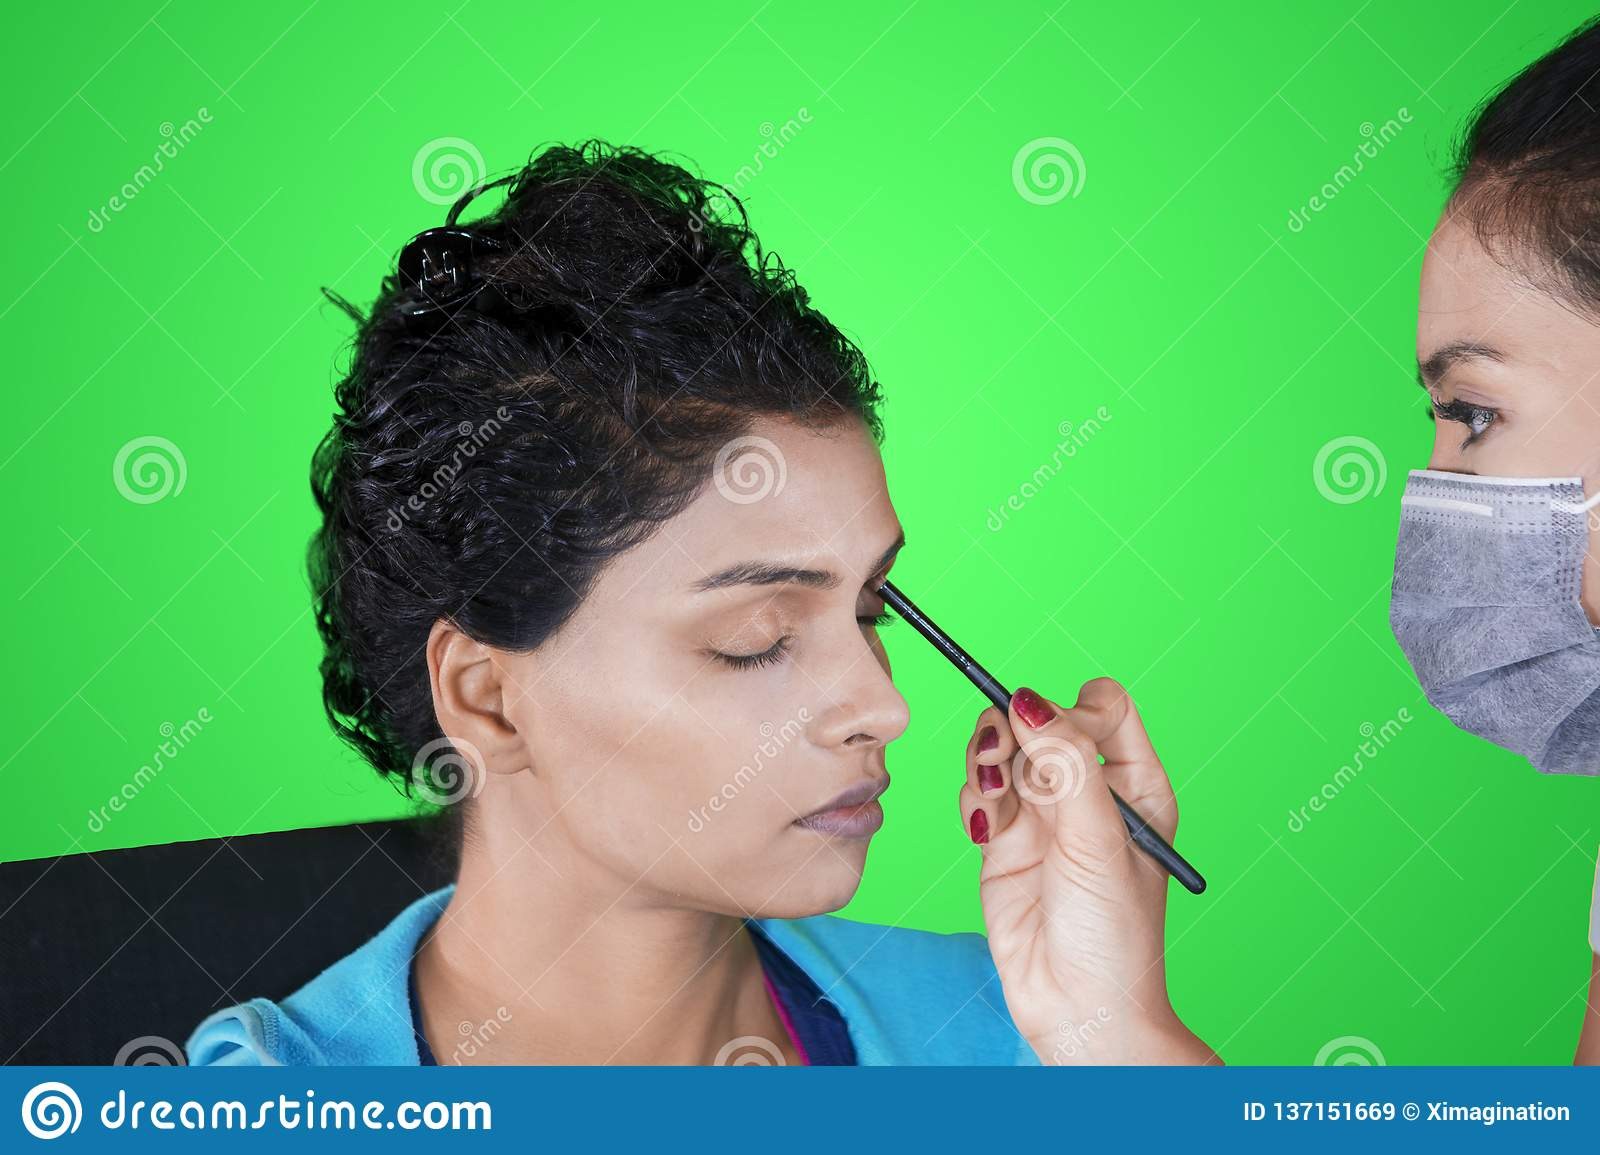 Image of India women applied eyeshadow while doing makeup with her makeup artist in the studio